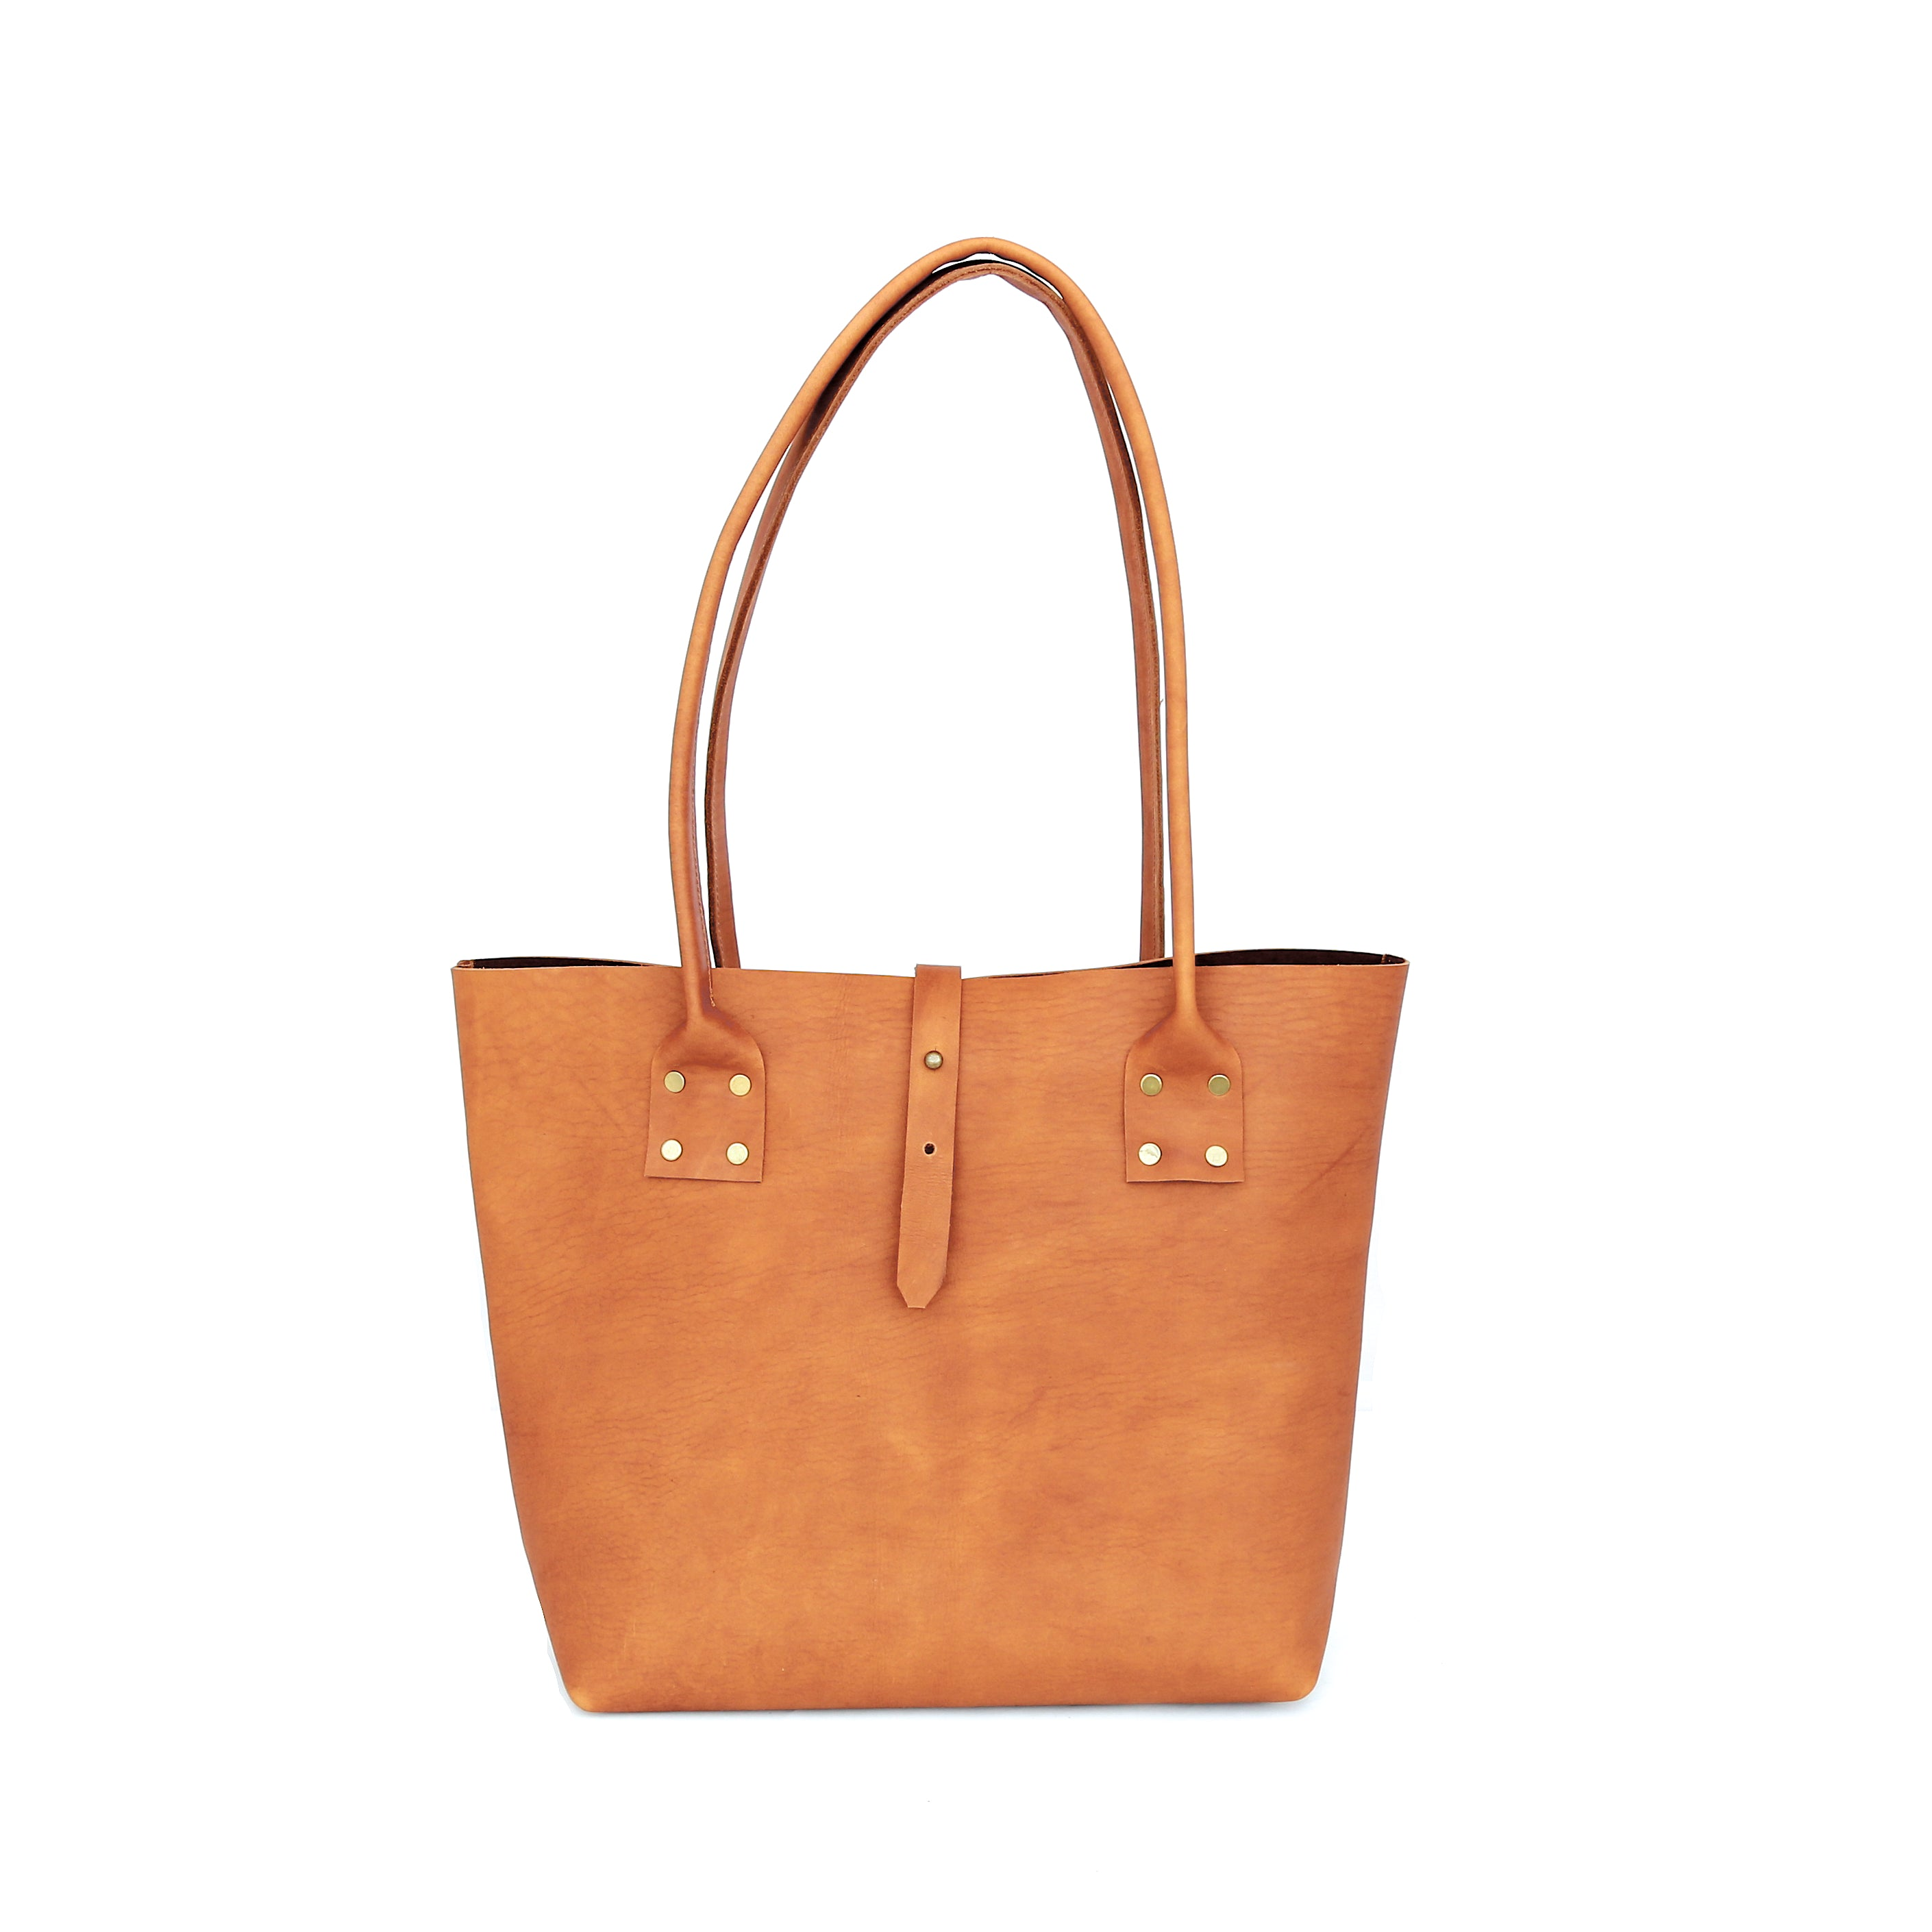 Refined Tote in Caramel Leather - handcrafted by Market Canvas Leather in Tofino, BC, Canada